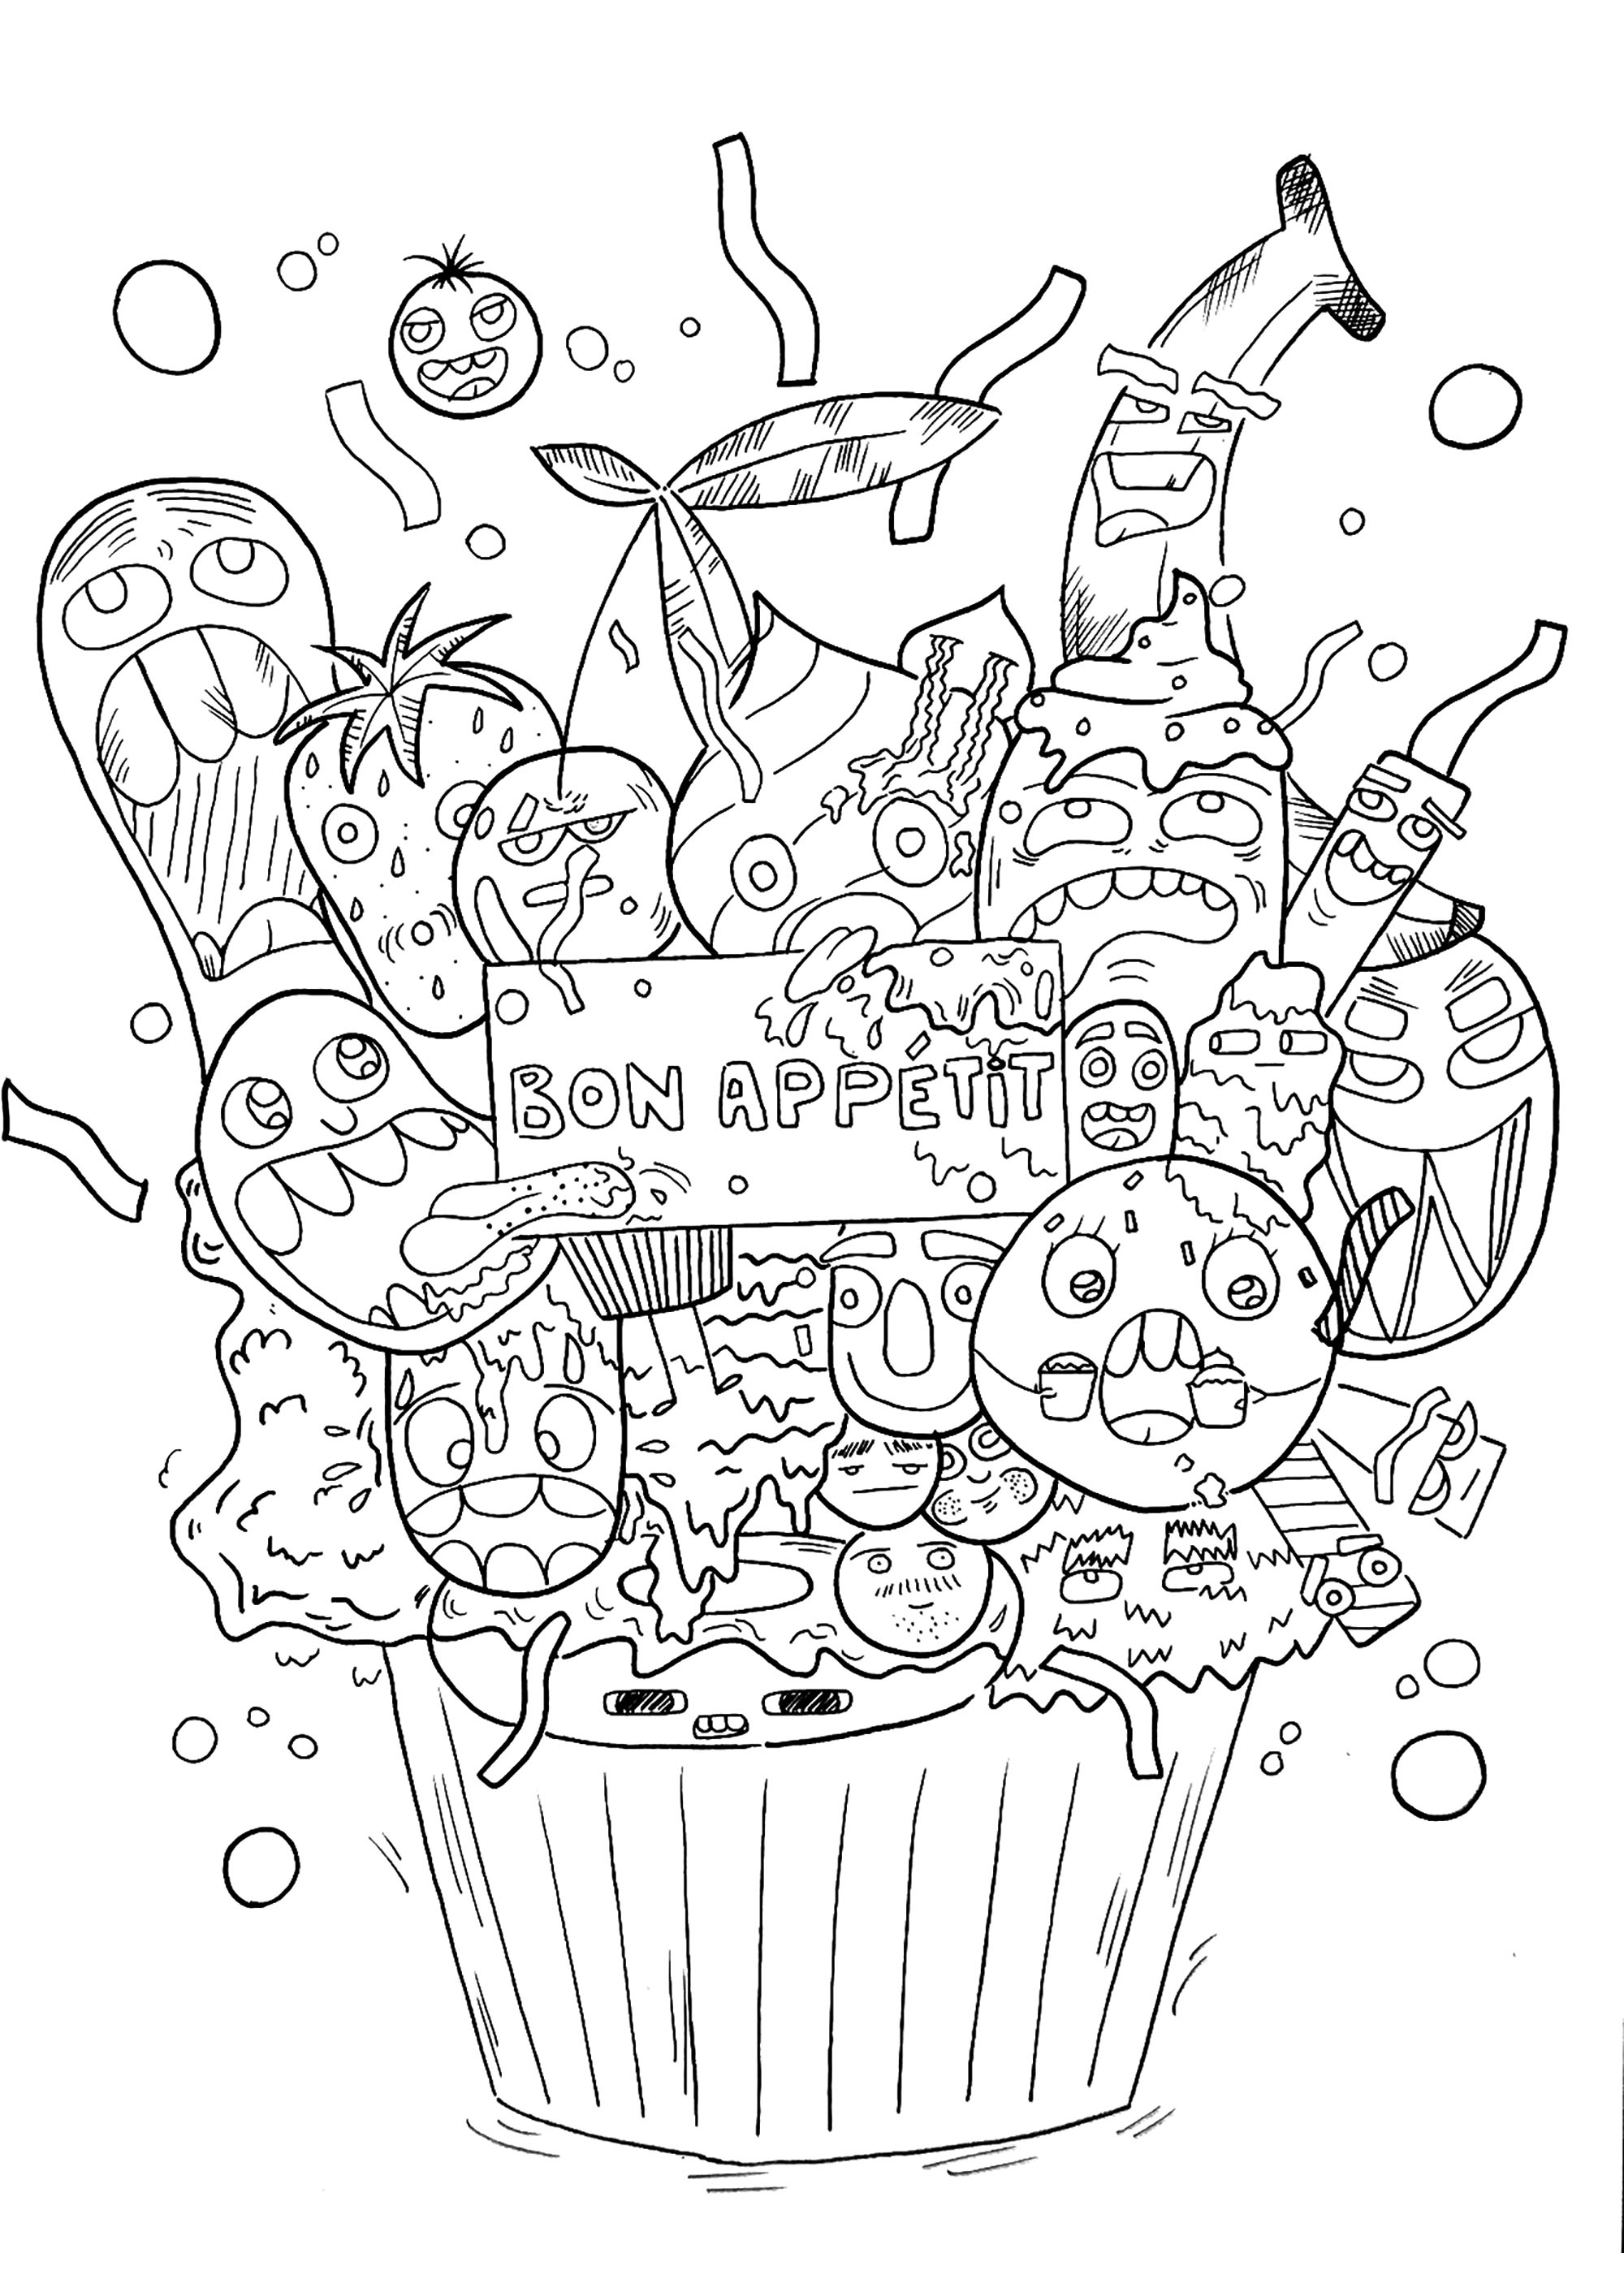 kids easy coloring book simple coloring page with bugs coloring sheet to print or coloring book kids easy